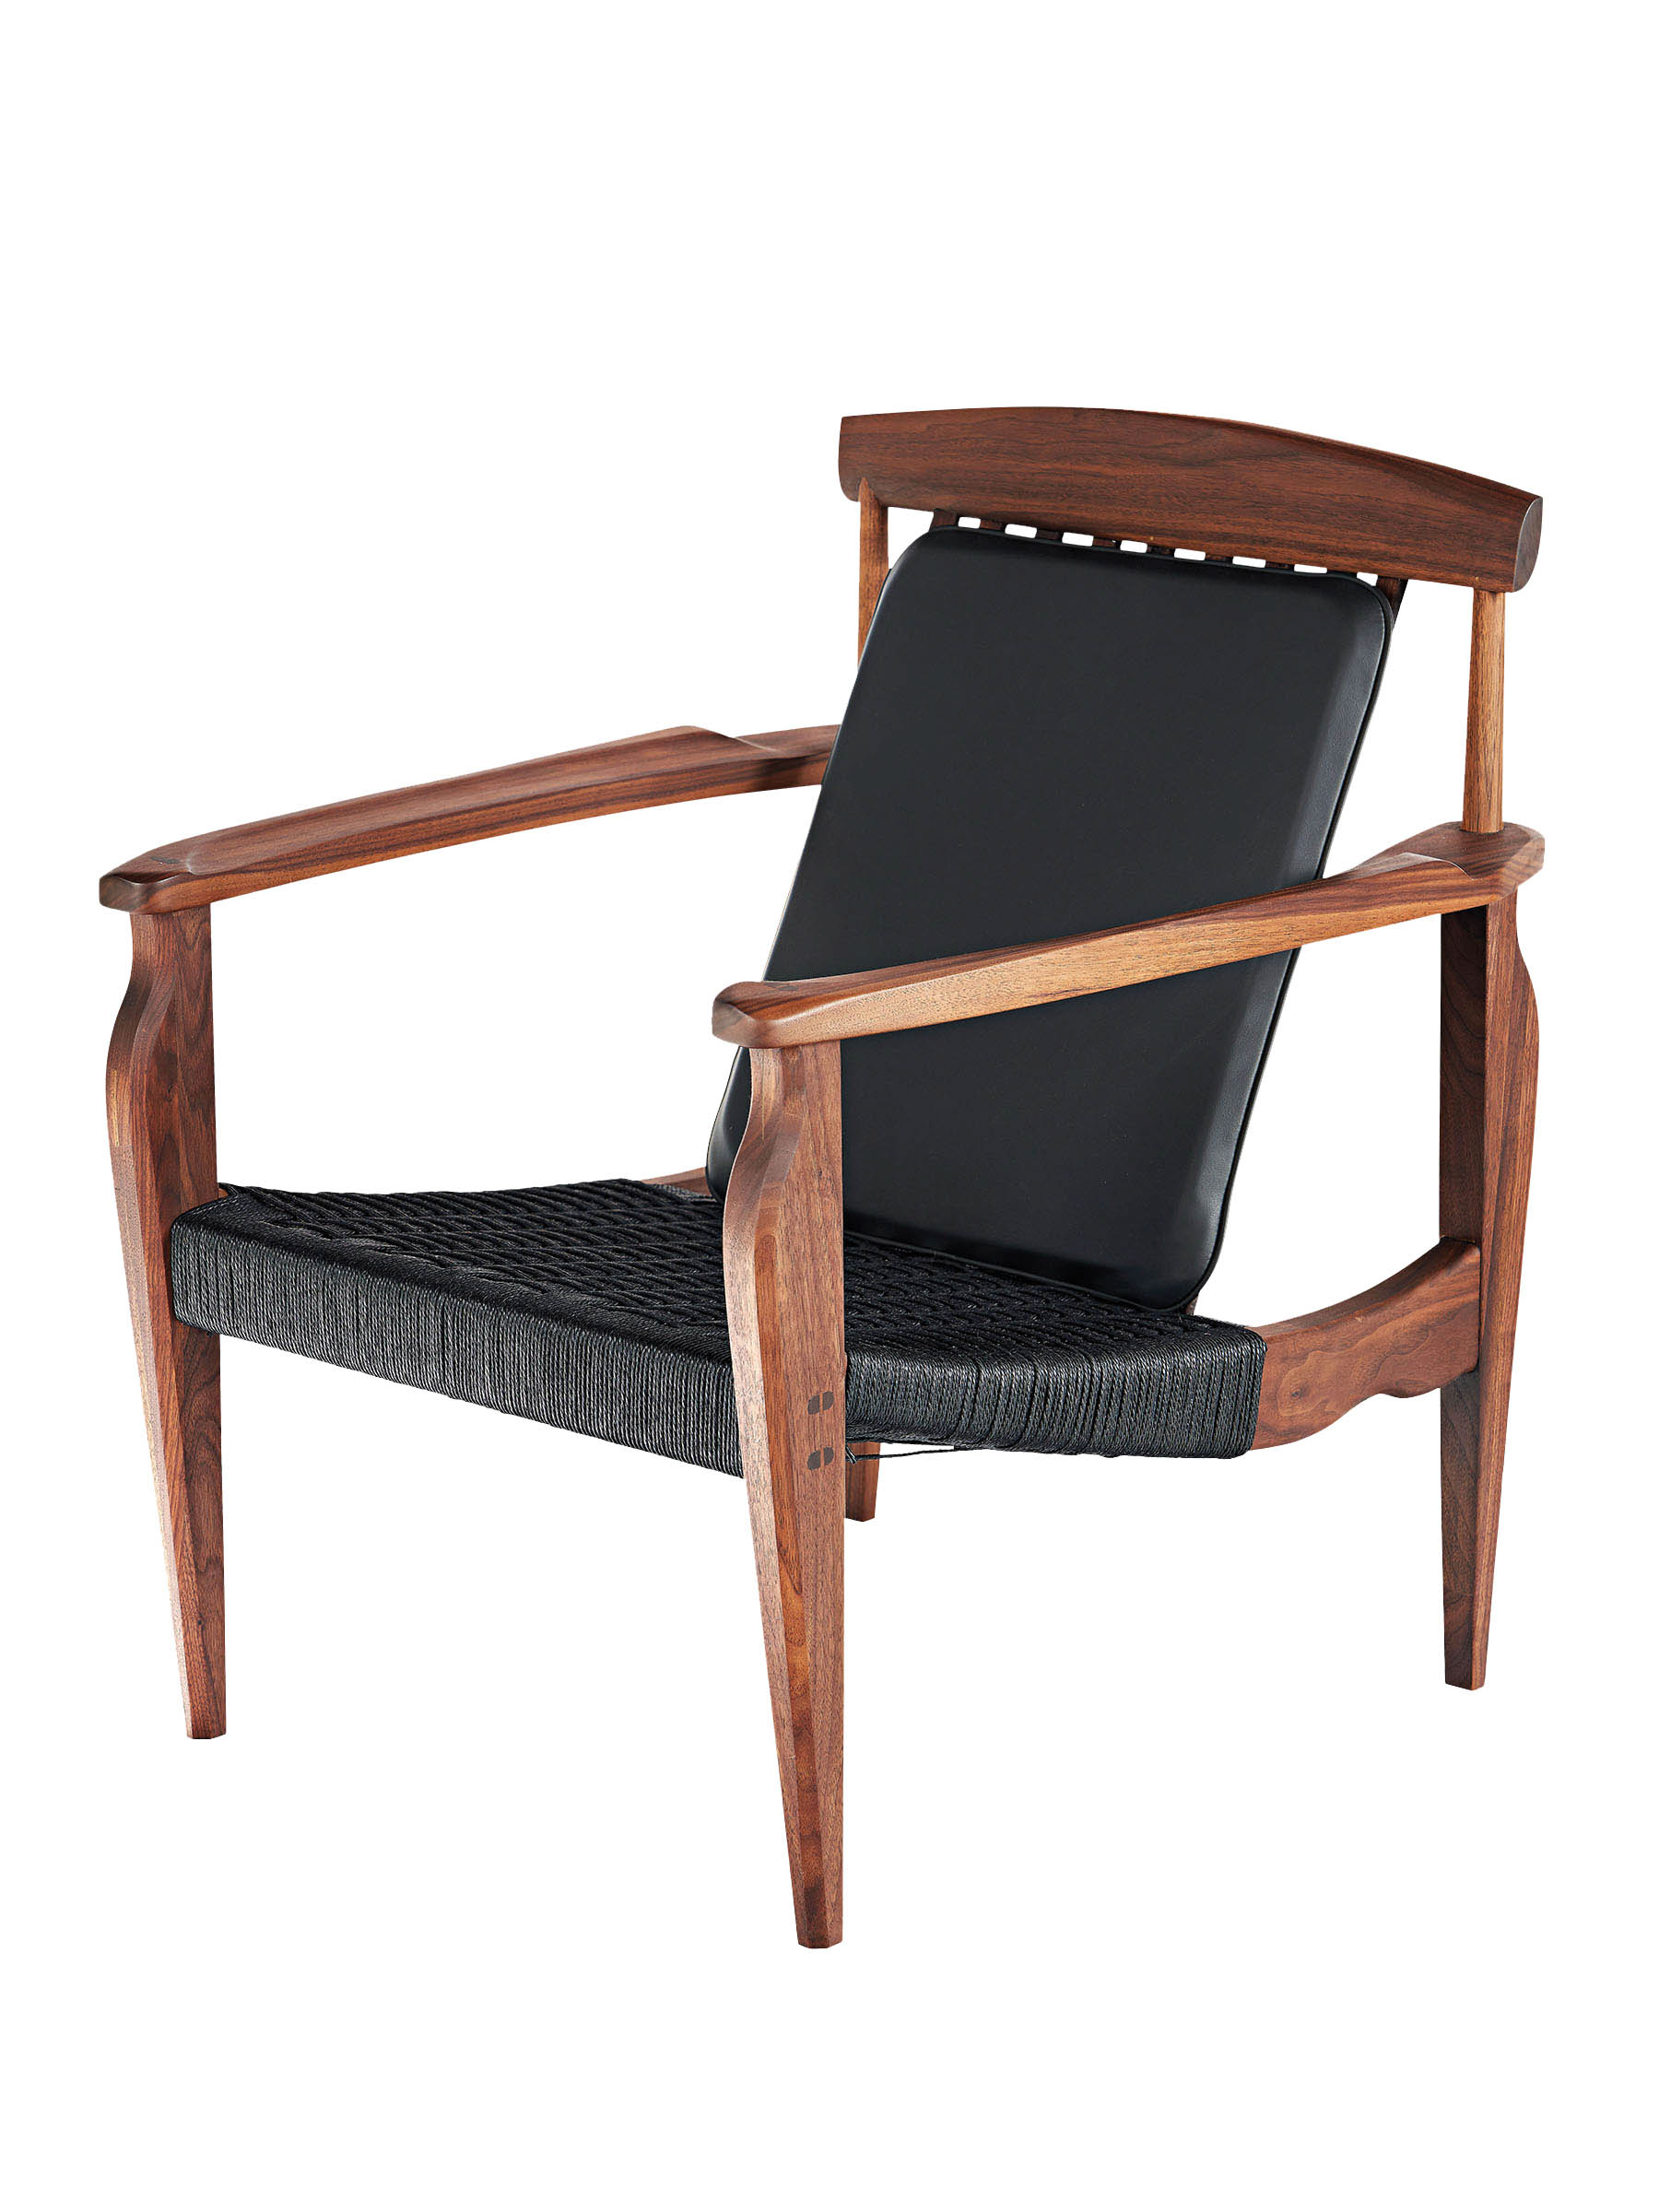 wood chair with black fabric